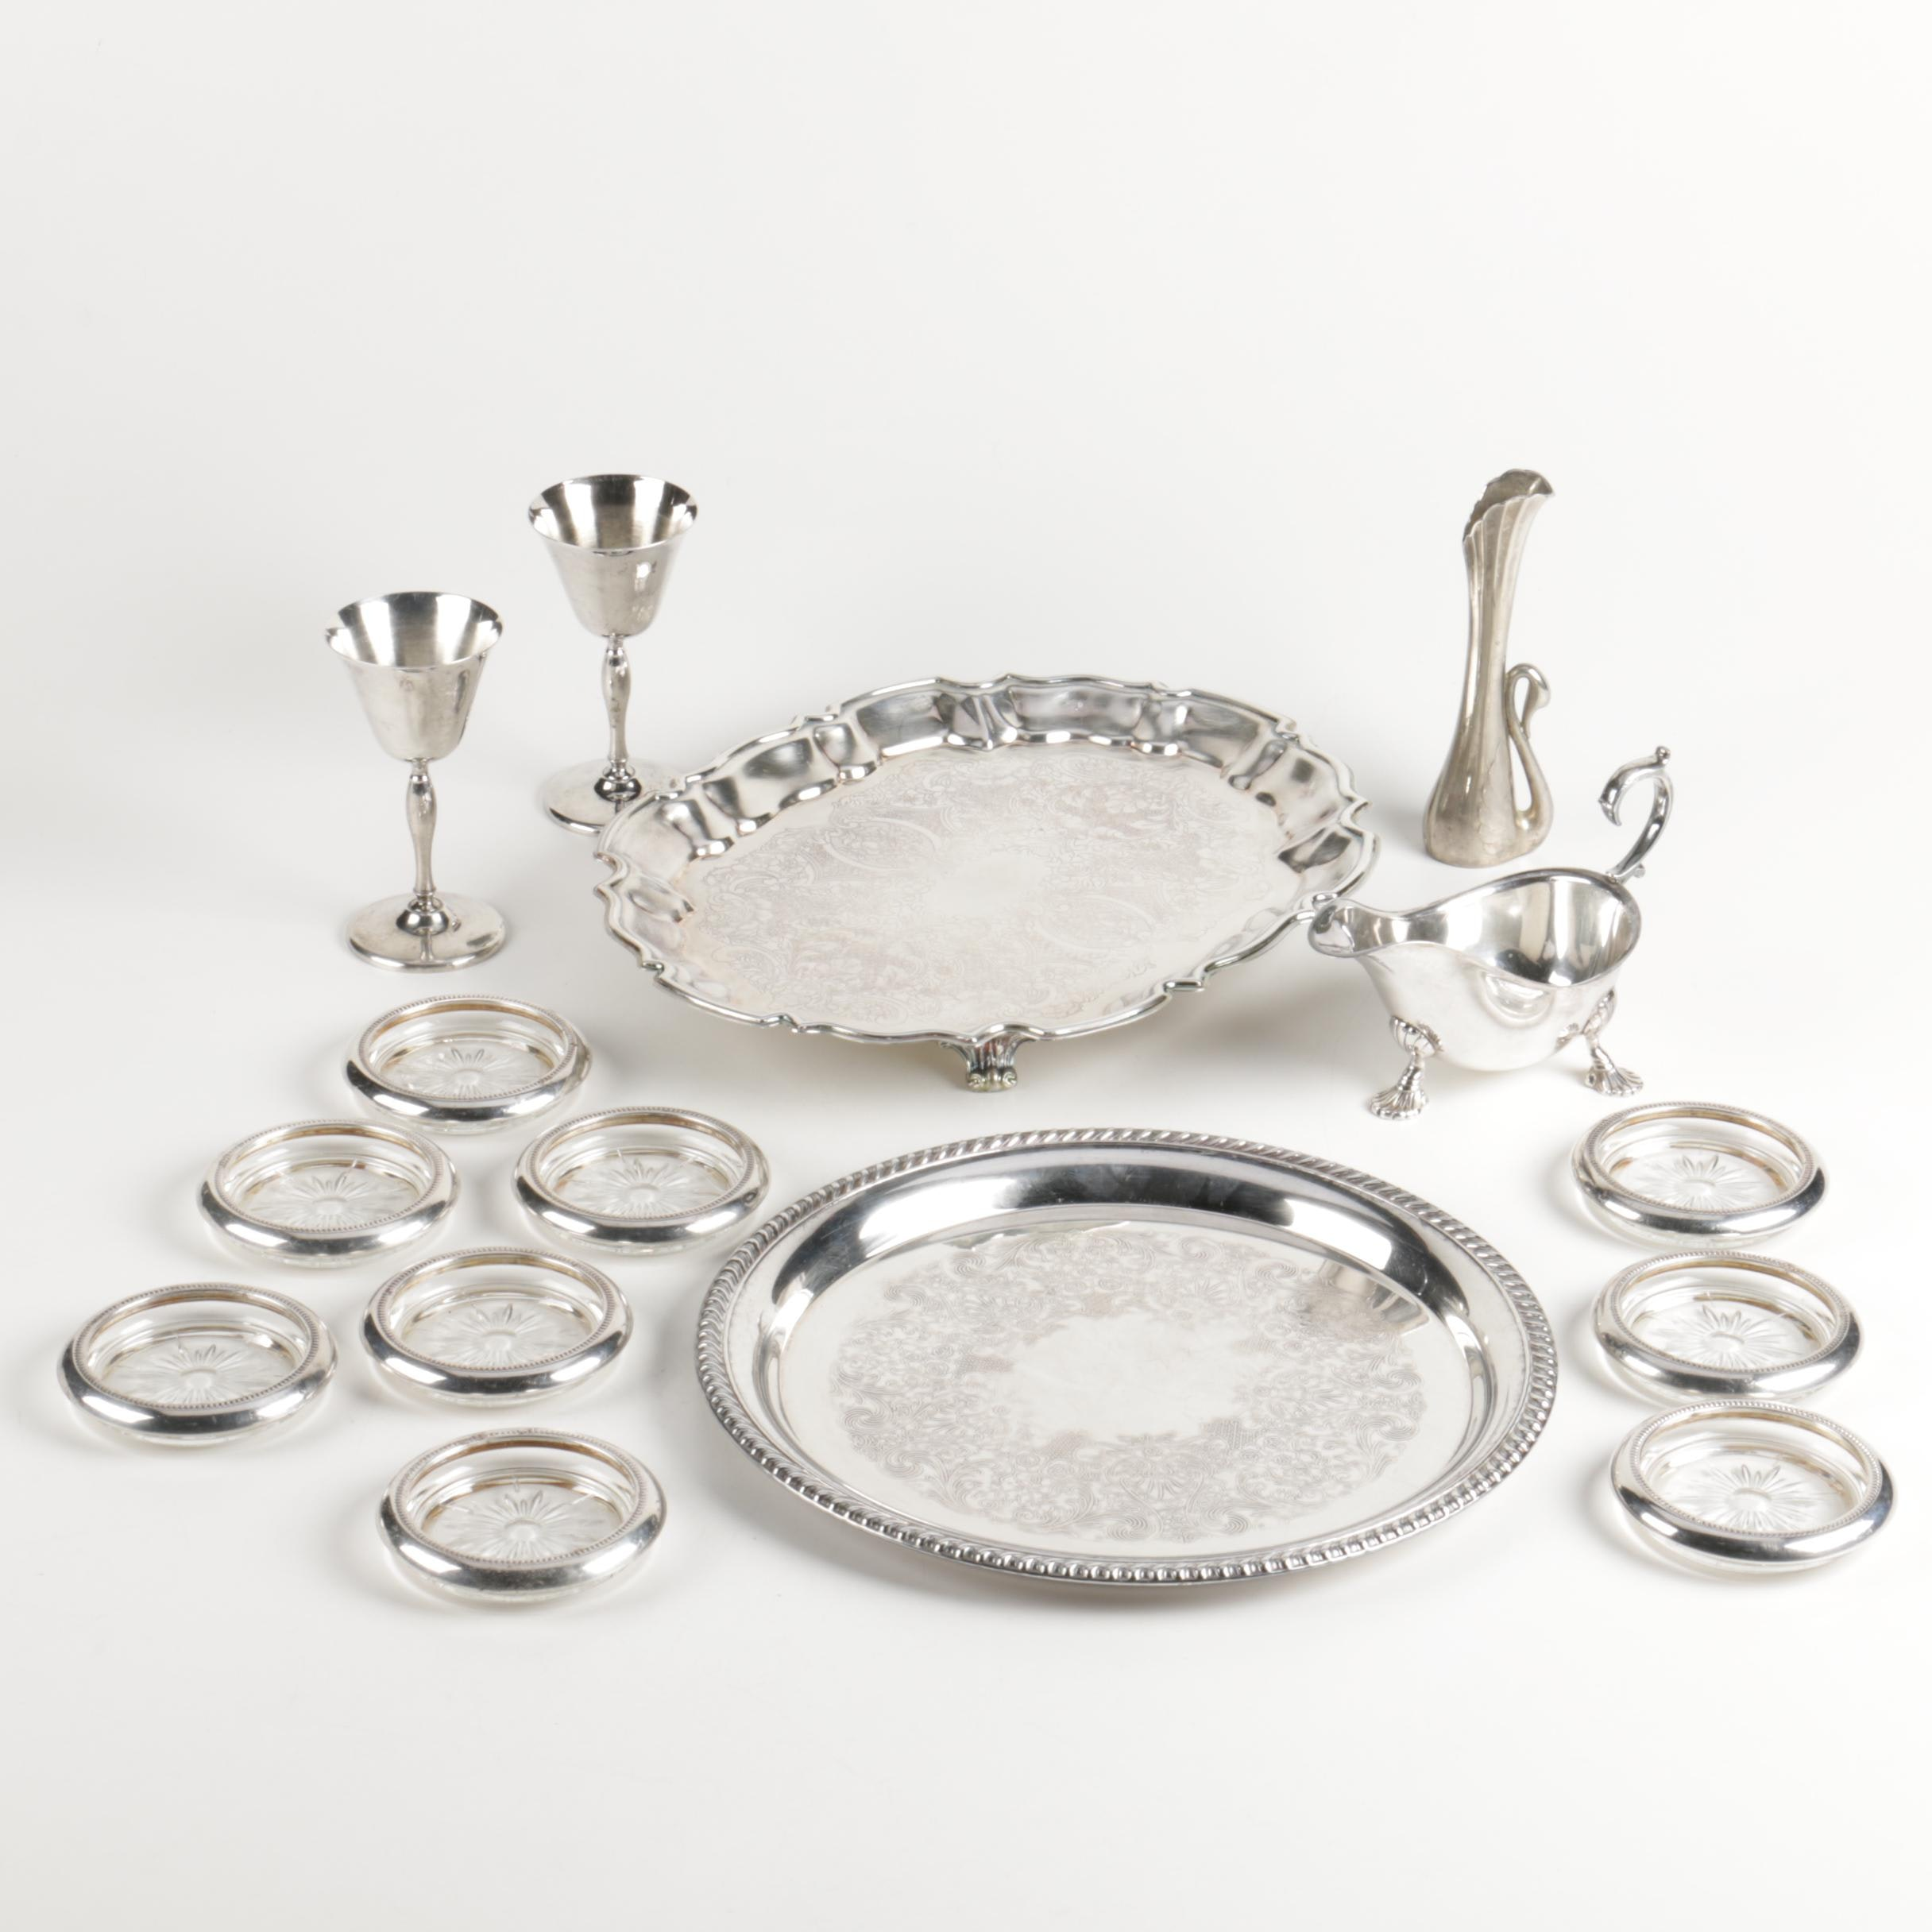 Leonard Bath Rim Tray with Other Silver Plate Coasters and Tableware